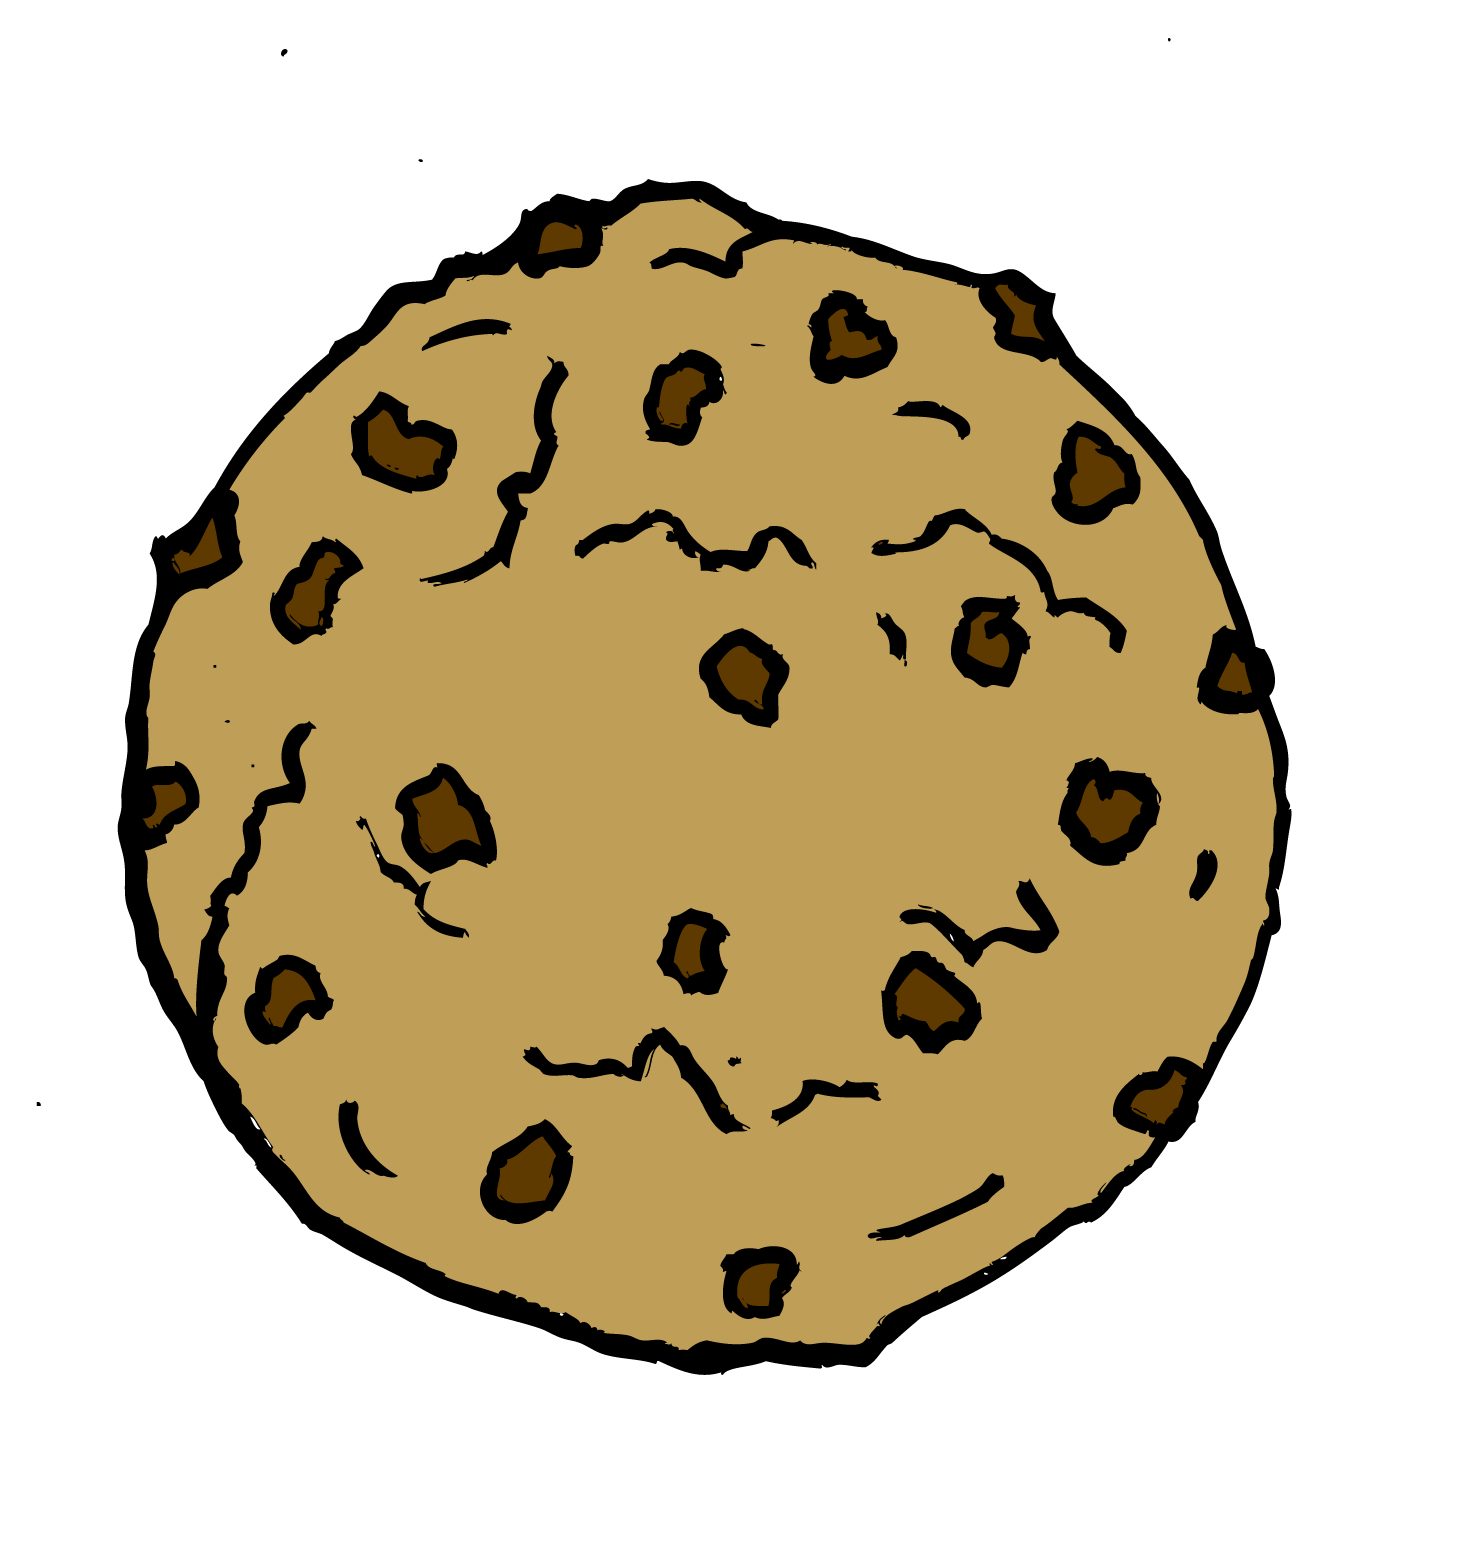 Animated cookies clipart jpg library download Free Cookies Cliparts, Download Free Clip Art, Free Clip Art on ... jpg library download